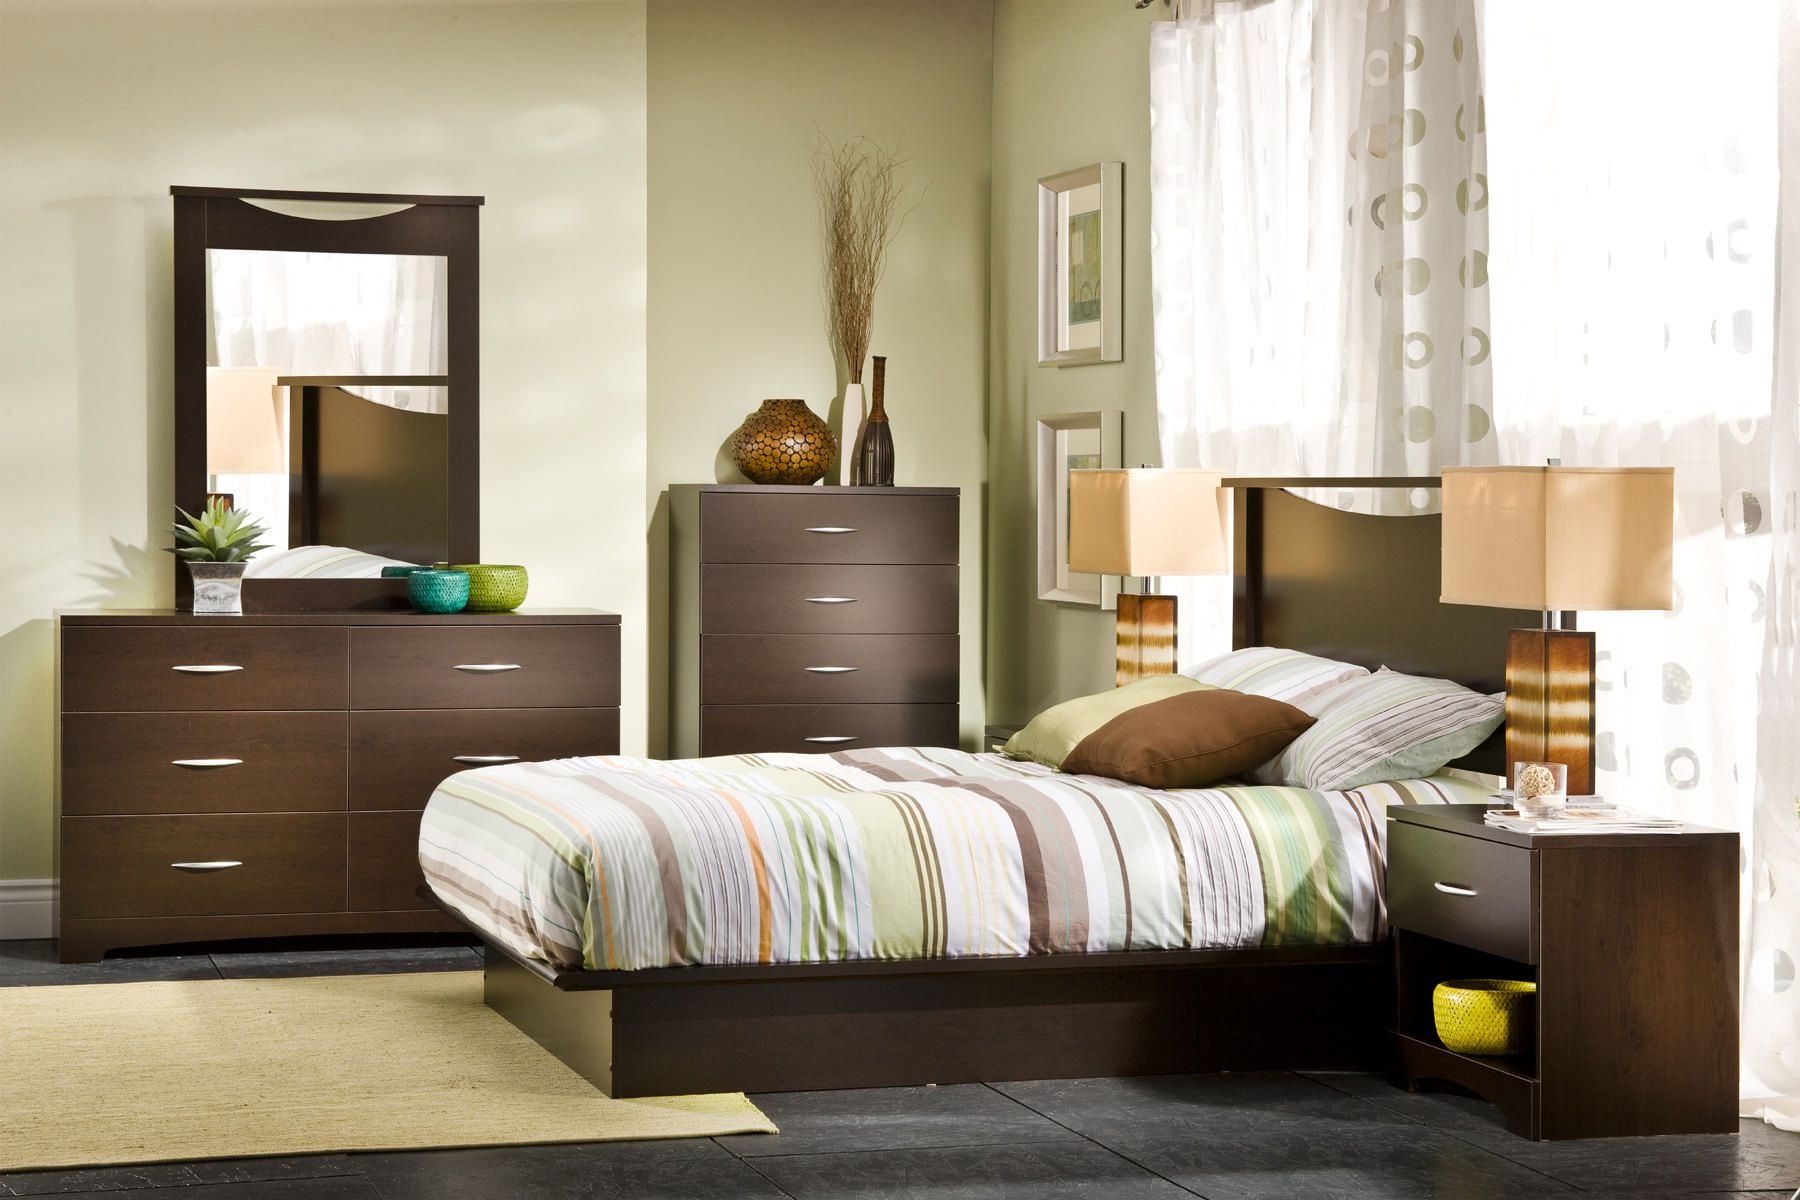 q furniture bedroom products san group wynwood number item flexsteel cristobal queen collection